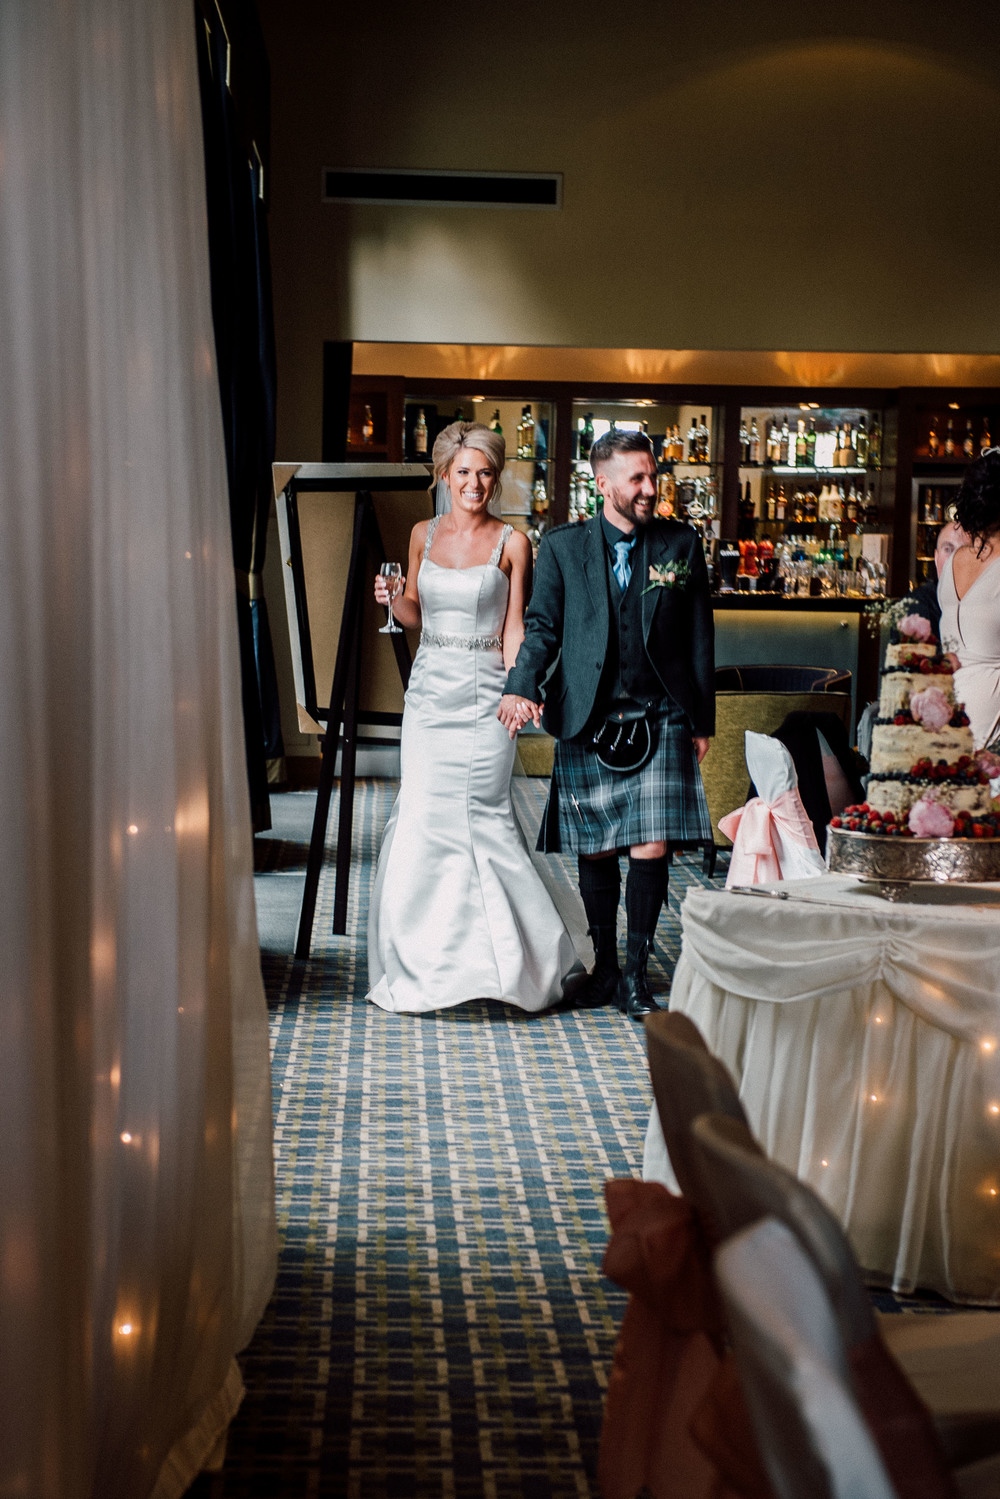 Dumfries-Wedding-Tom-Cairns-Photography-Easterbrook-Hall-Blush-Pink-Wedding-Details 55